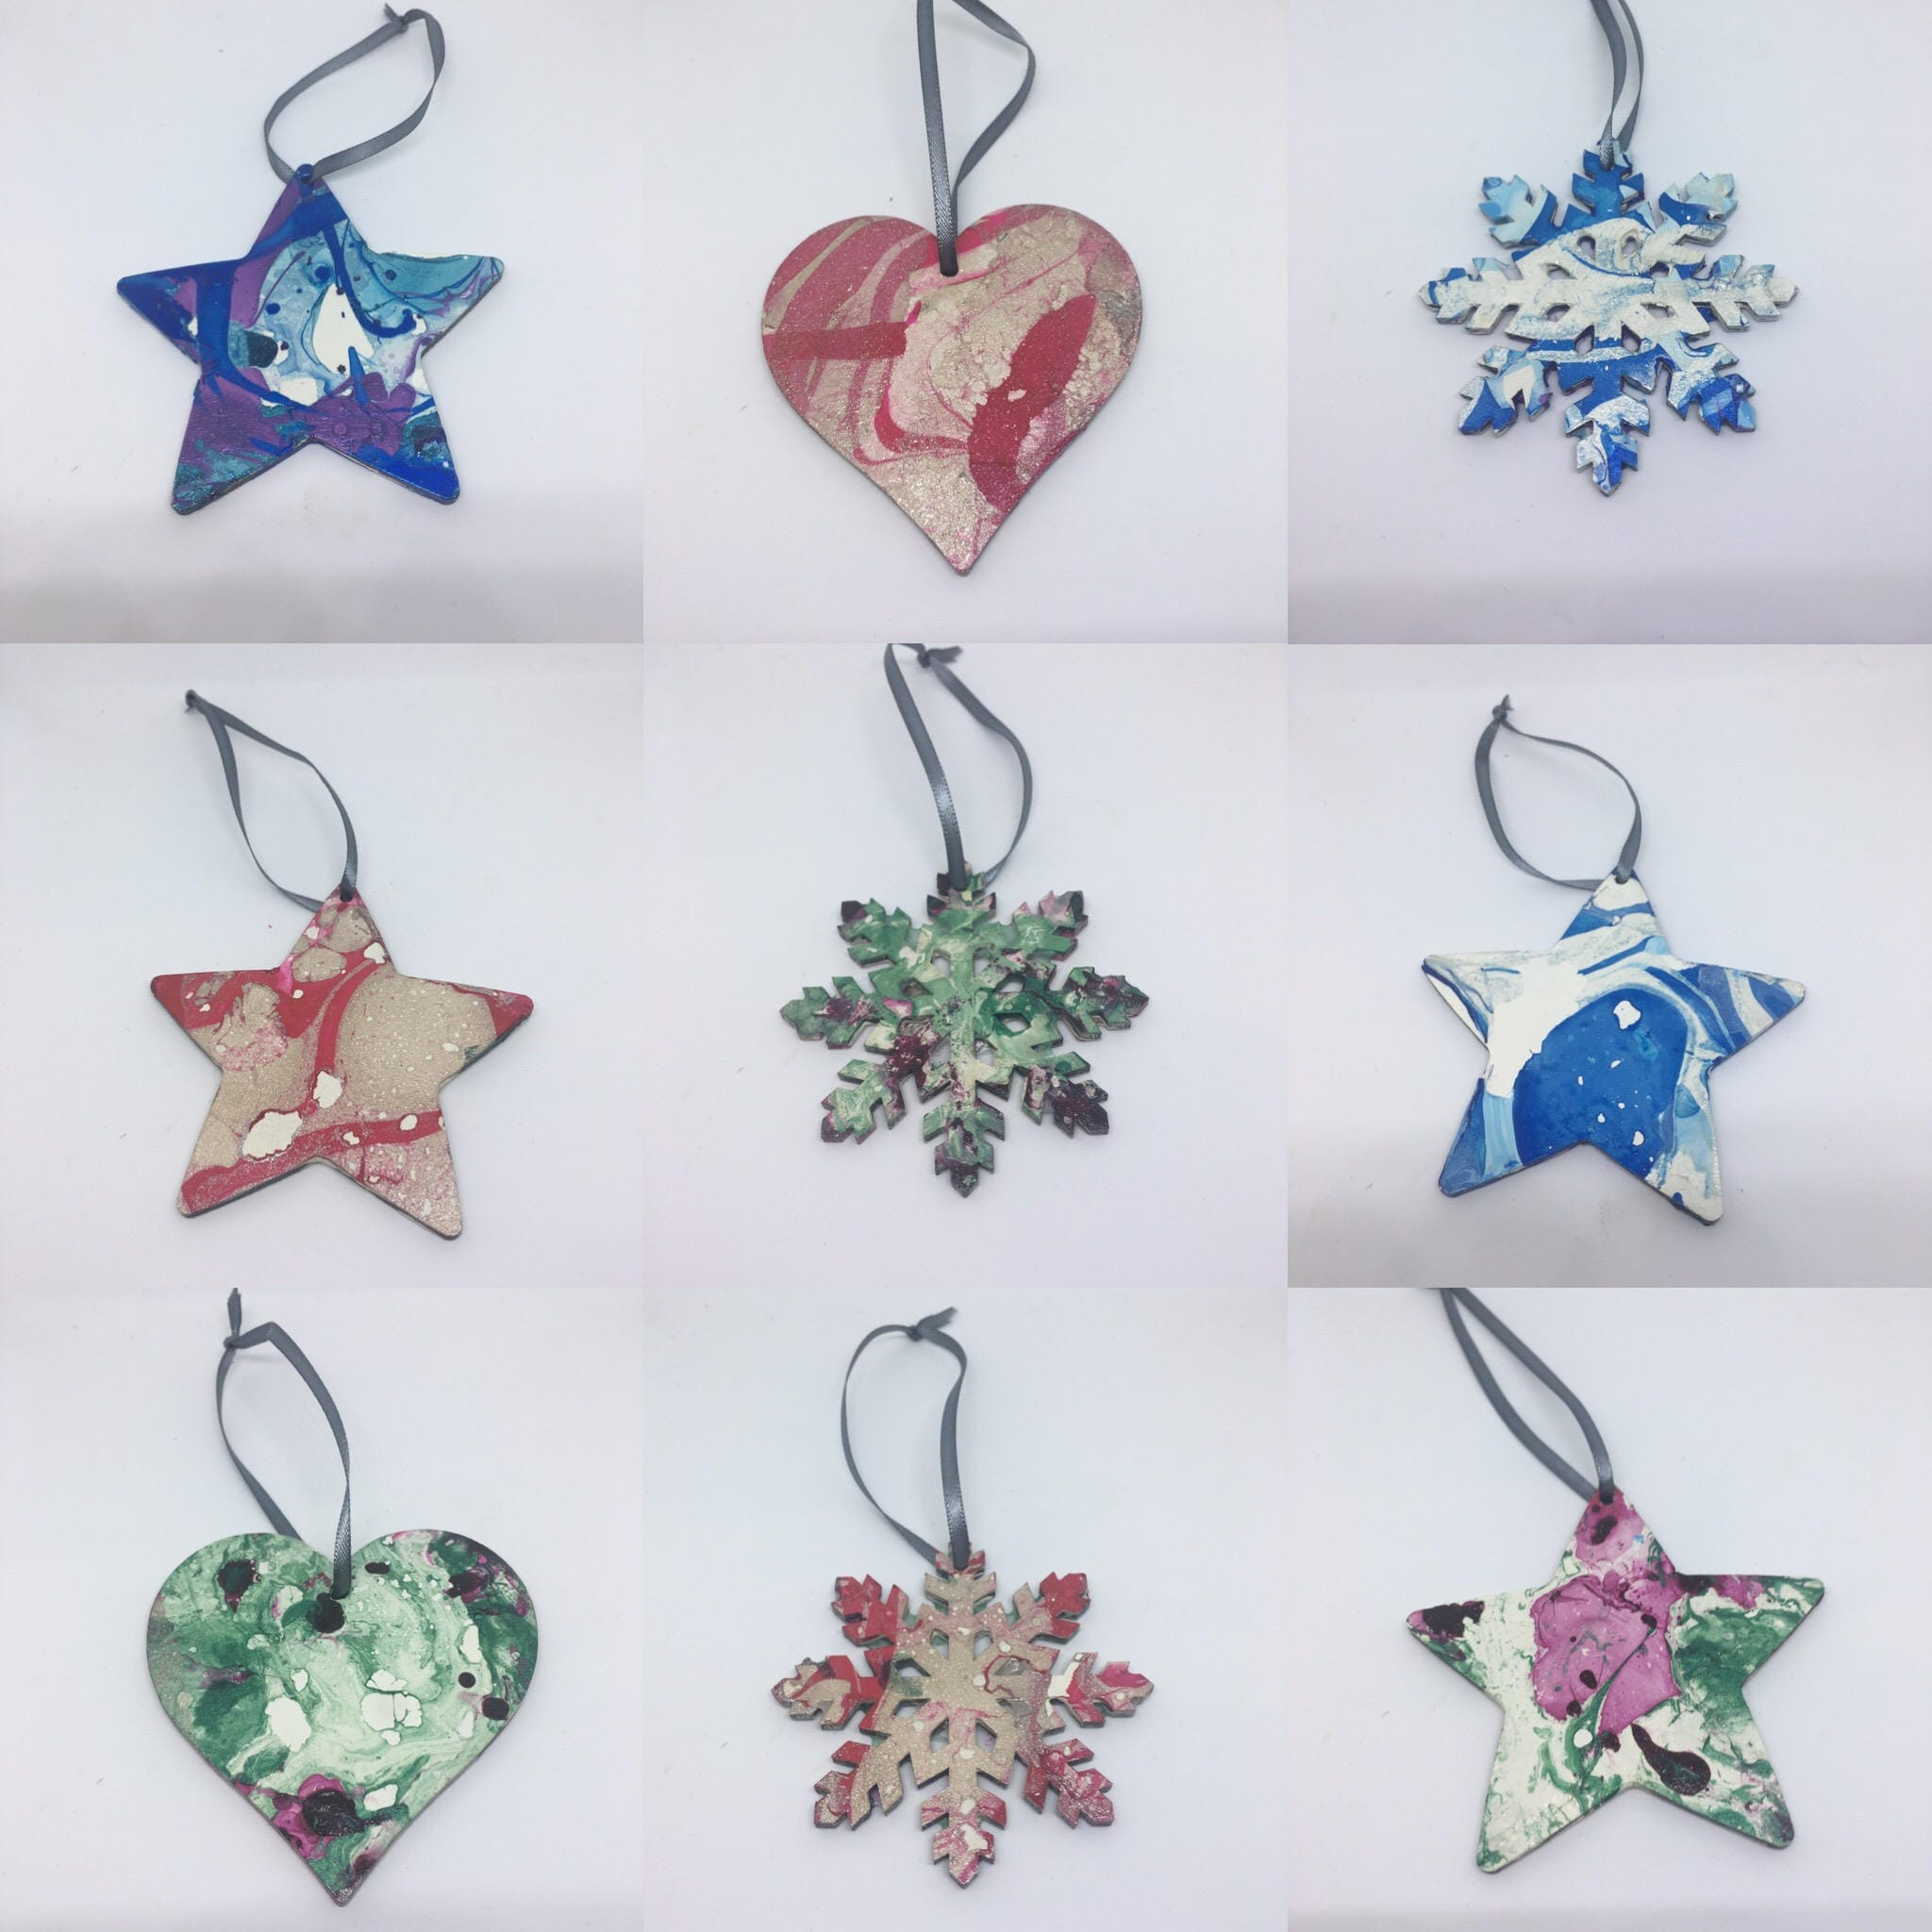 Watercolour Christmas Decorations Snowflake Star Heart Hanging